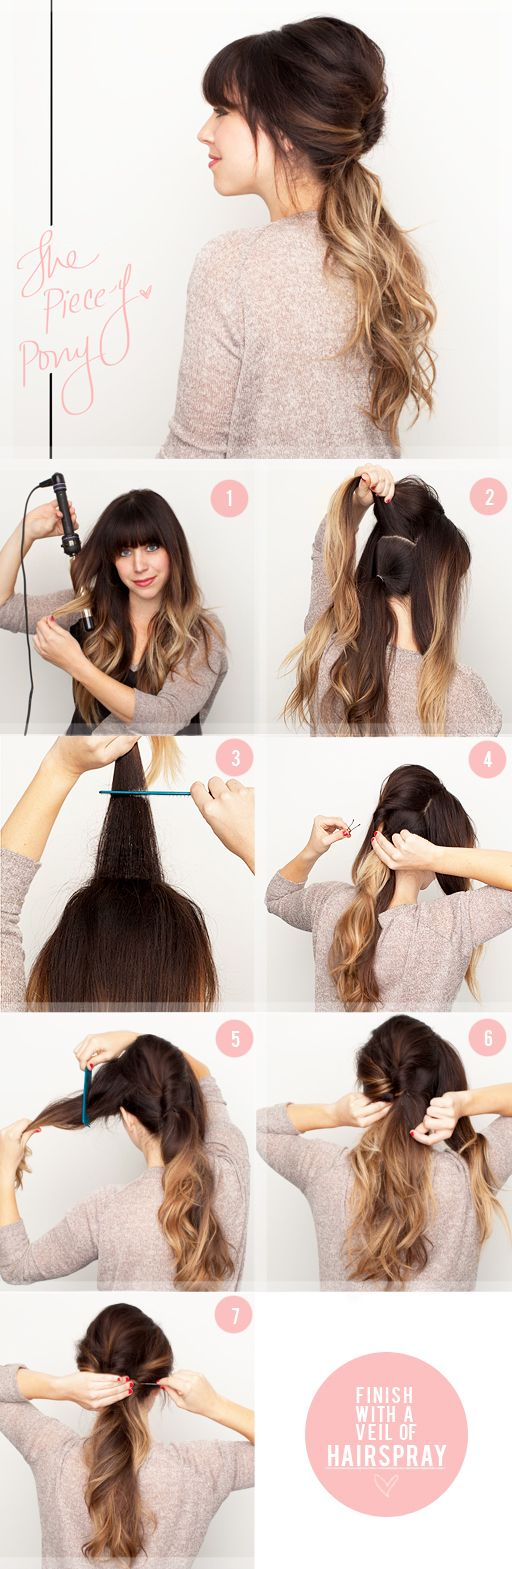 a new twist on the plain old ponytail.